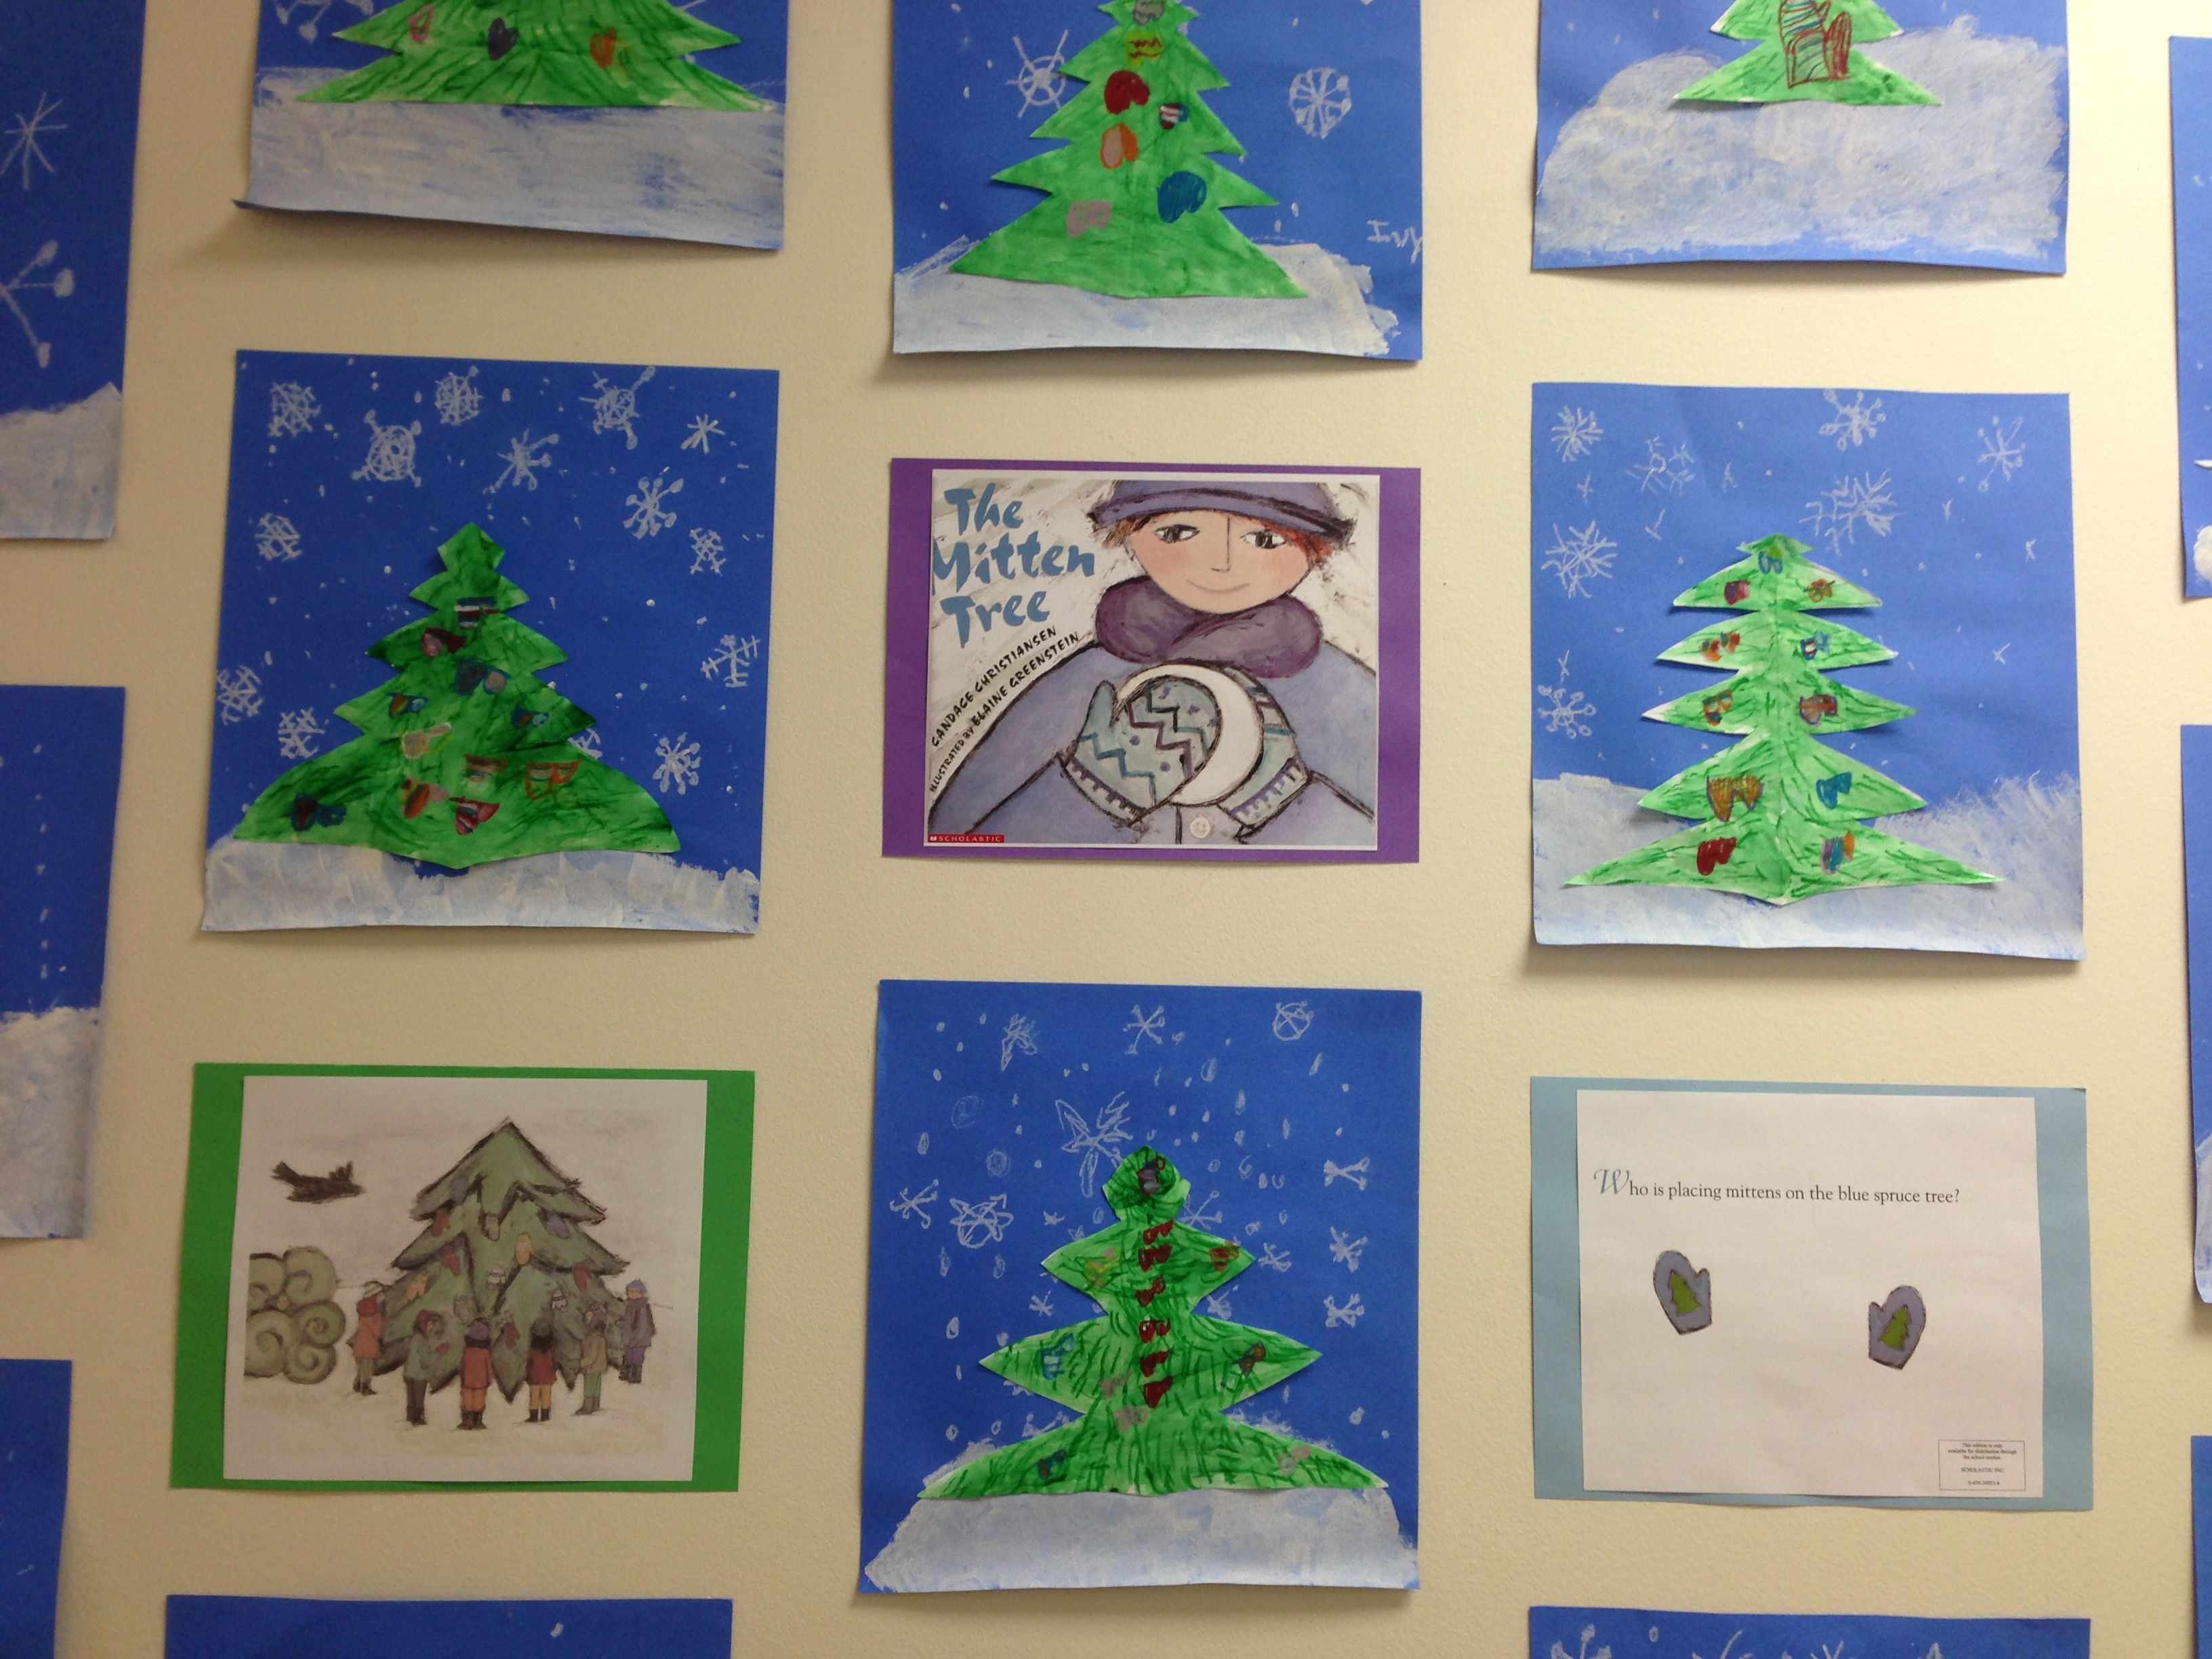 Cool Lesson On Color And Symmetry With The Mitten Tree